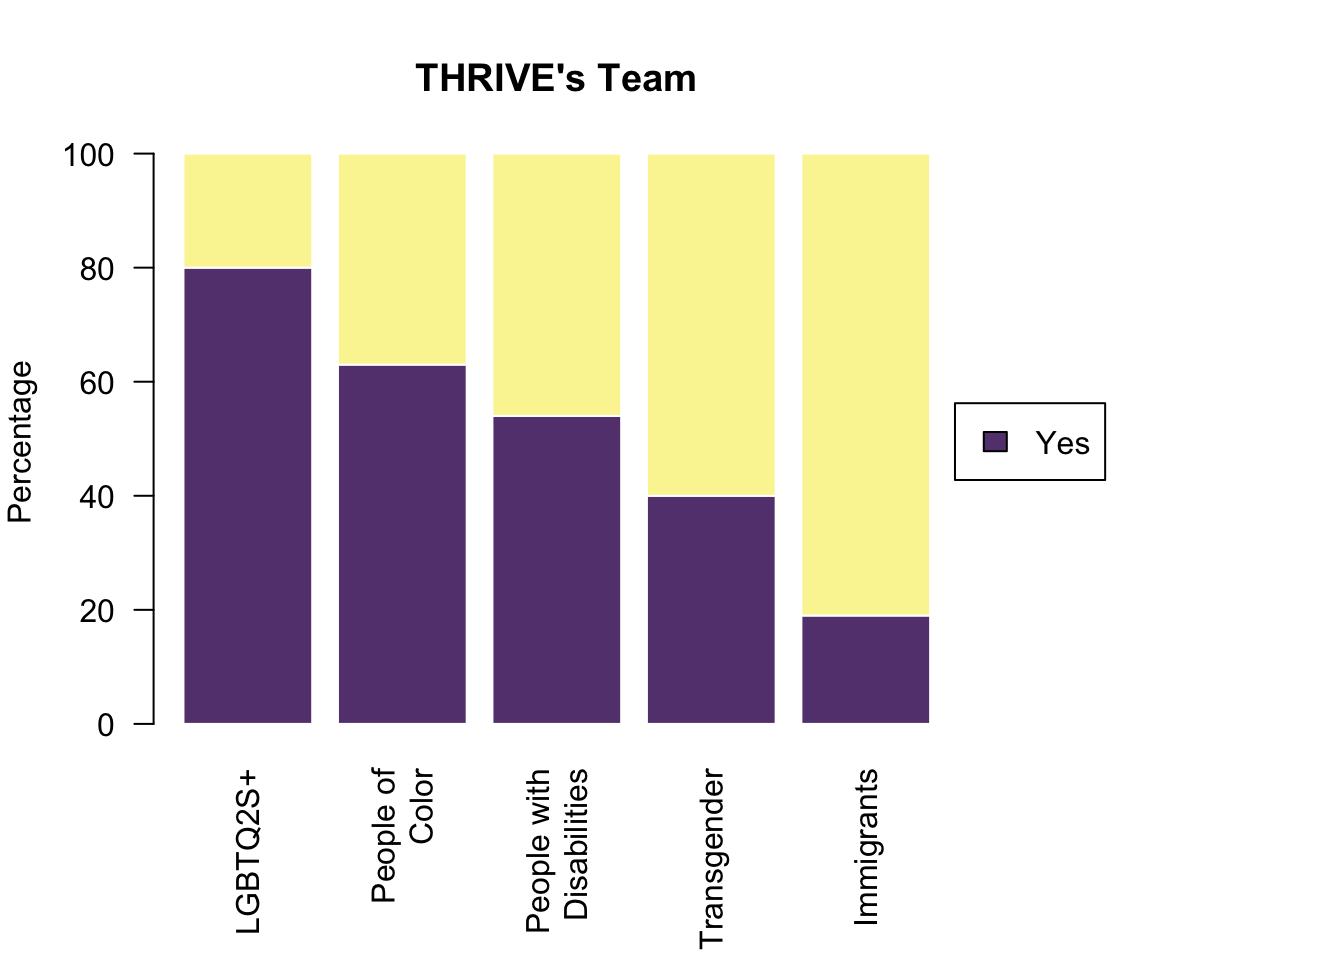 Barplot of the identities of the THRIVE Lifeline team. LGBTQIA+ makes up 95%, women and non-binary makes up 75%, people of color make up 70%, people with disabilities make up 50%, and immigrants make up 15%.